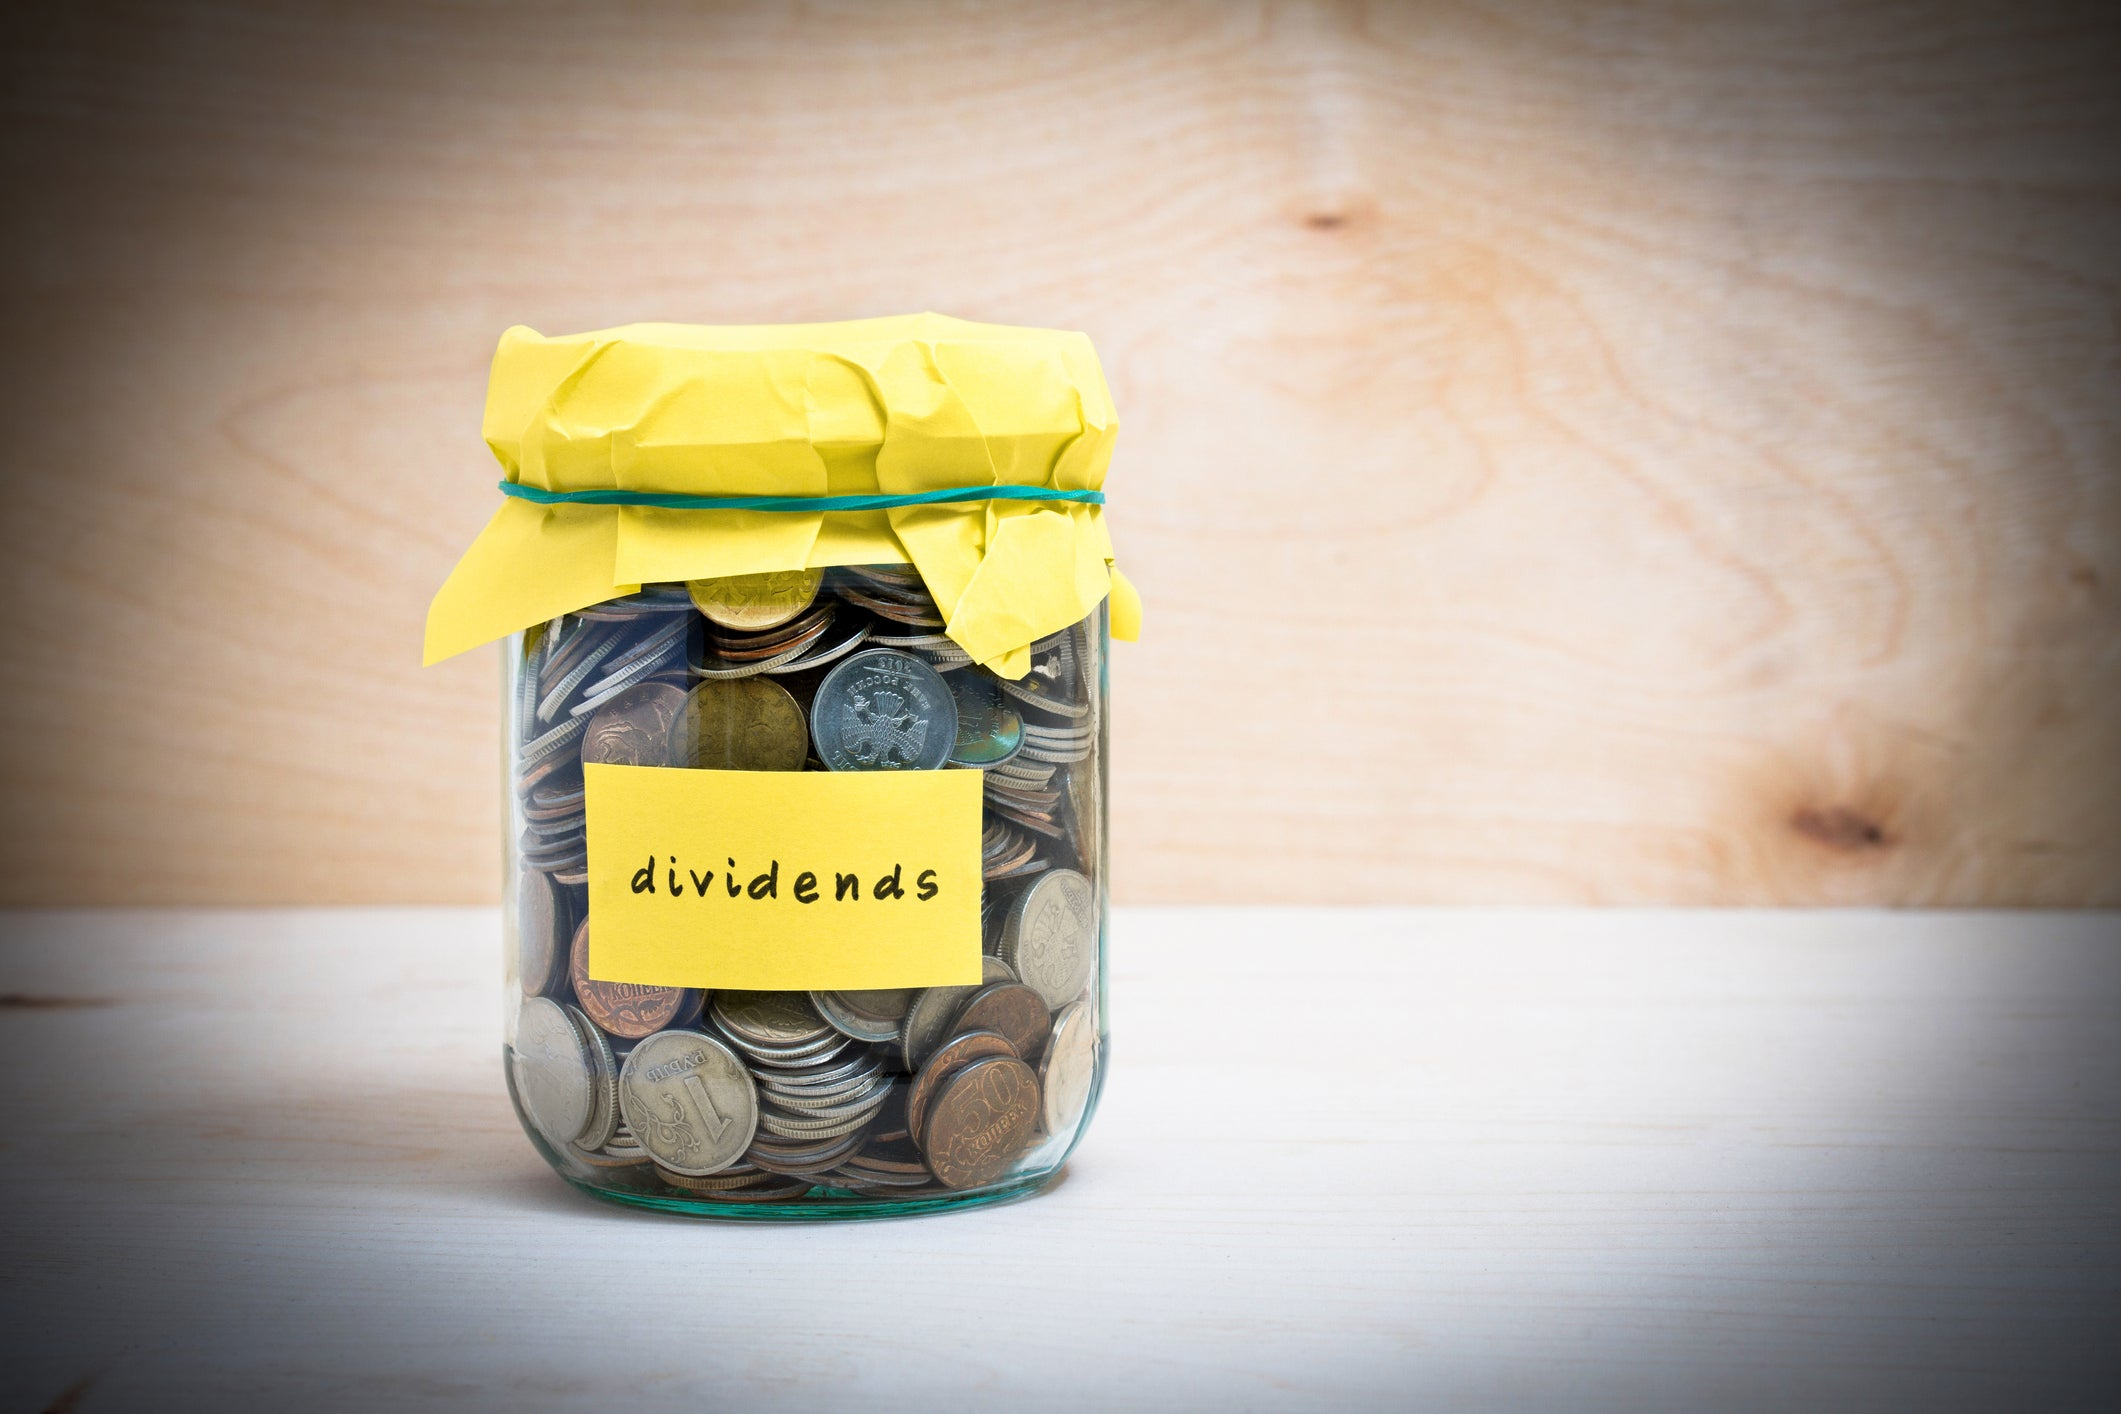 2 Top Dividend Stocks to Buy in a Stock Market Crash